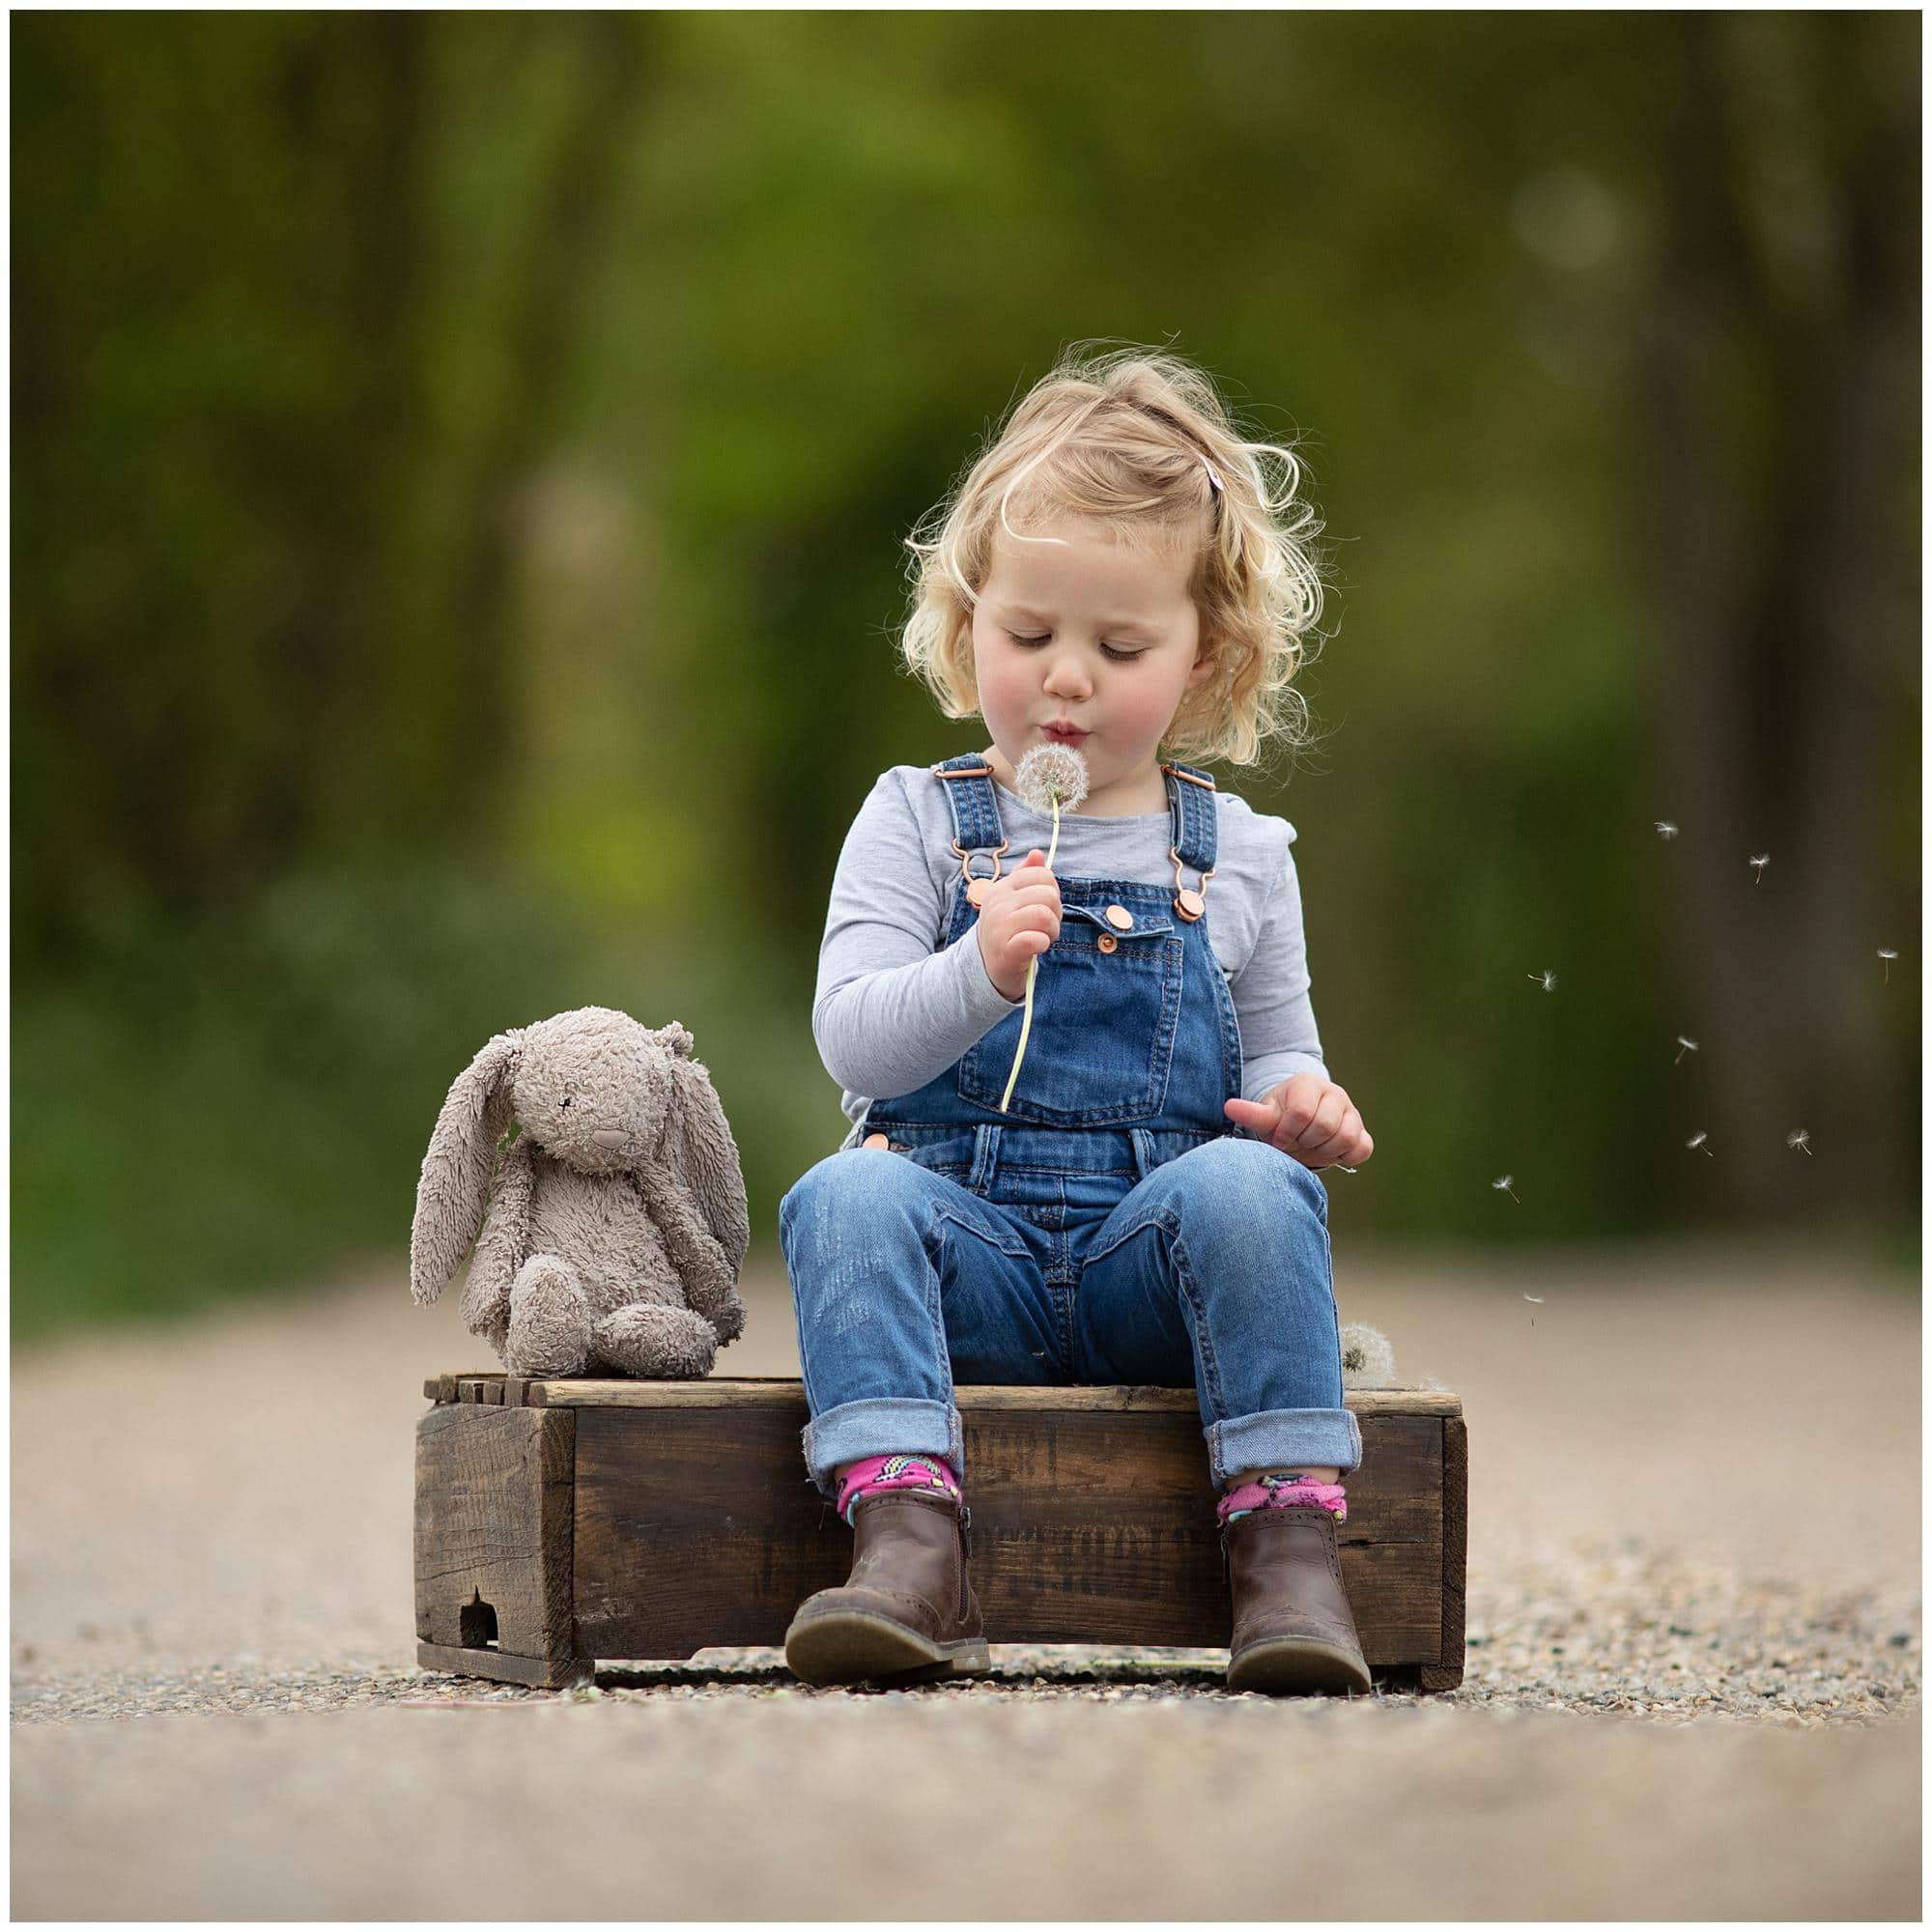 Little girl blows a dandilion head and sits beside her toy bunny